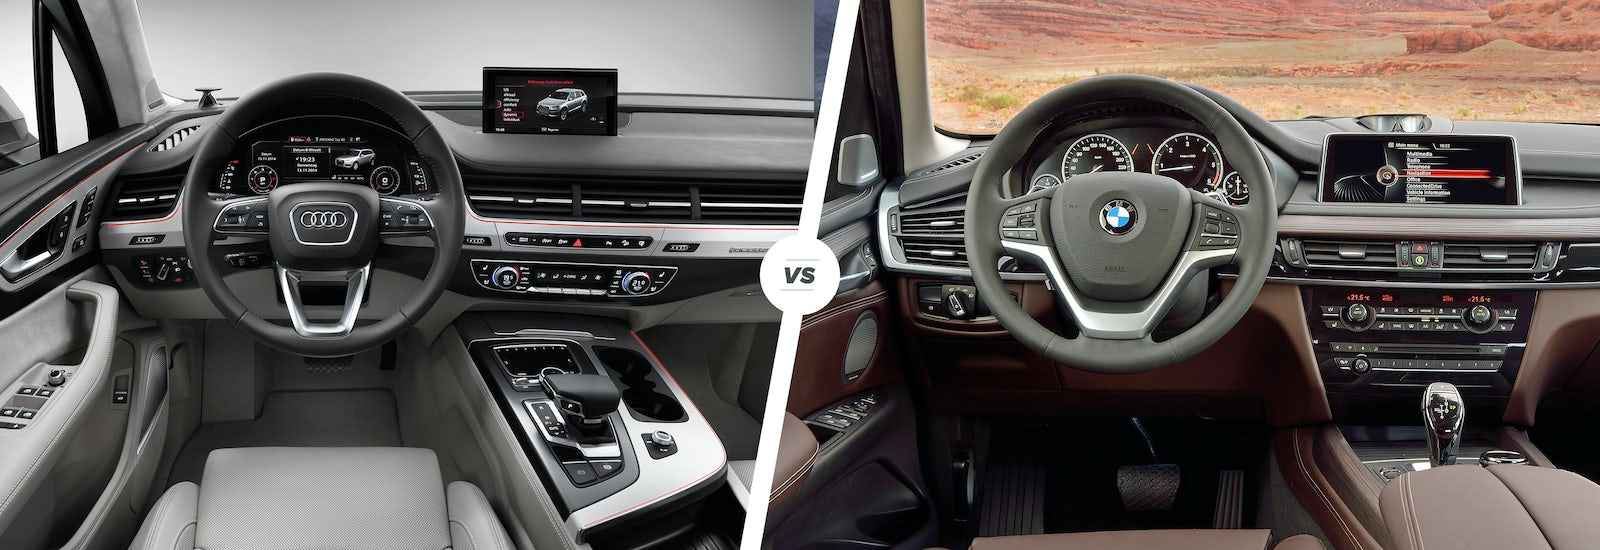 Audi Q Vs BMW X Luxury SUV Showdown Carwow - Audi vs bmw